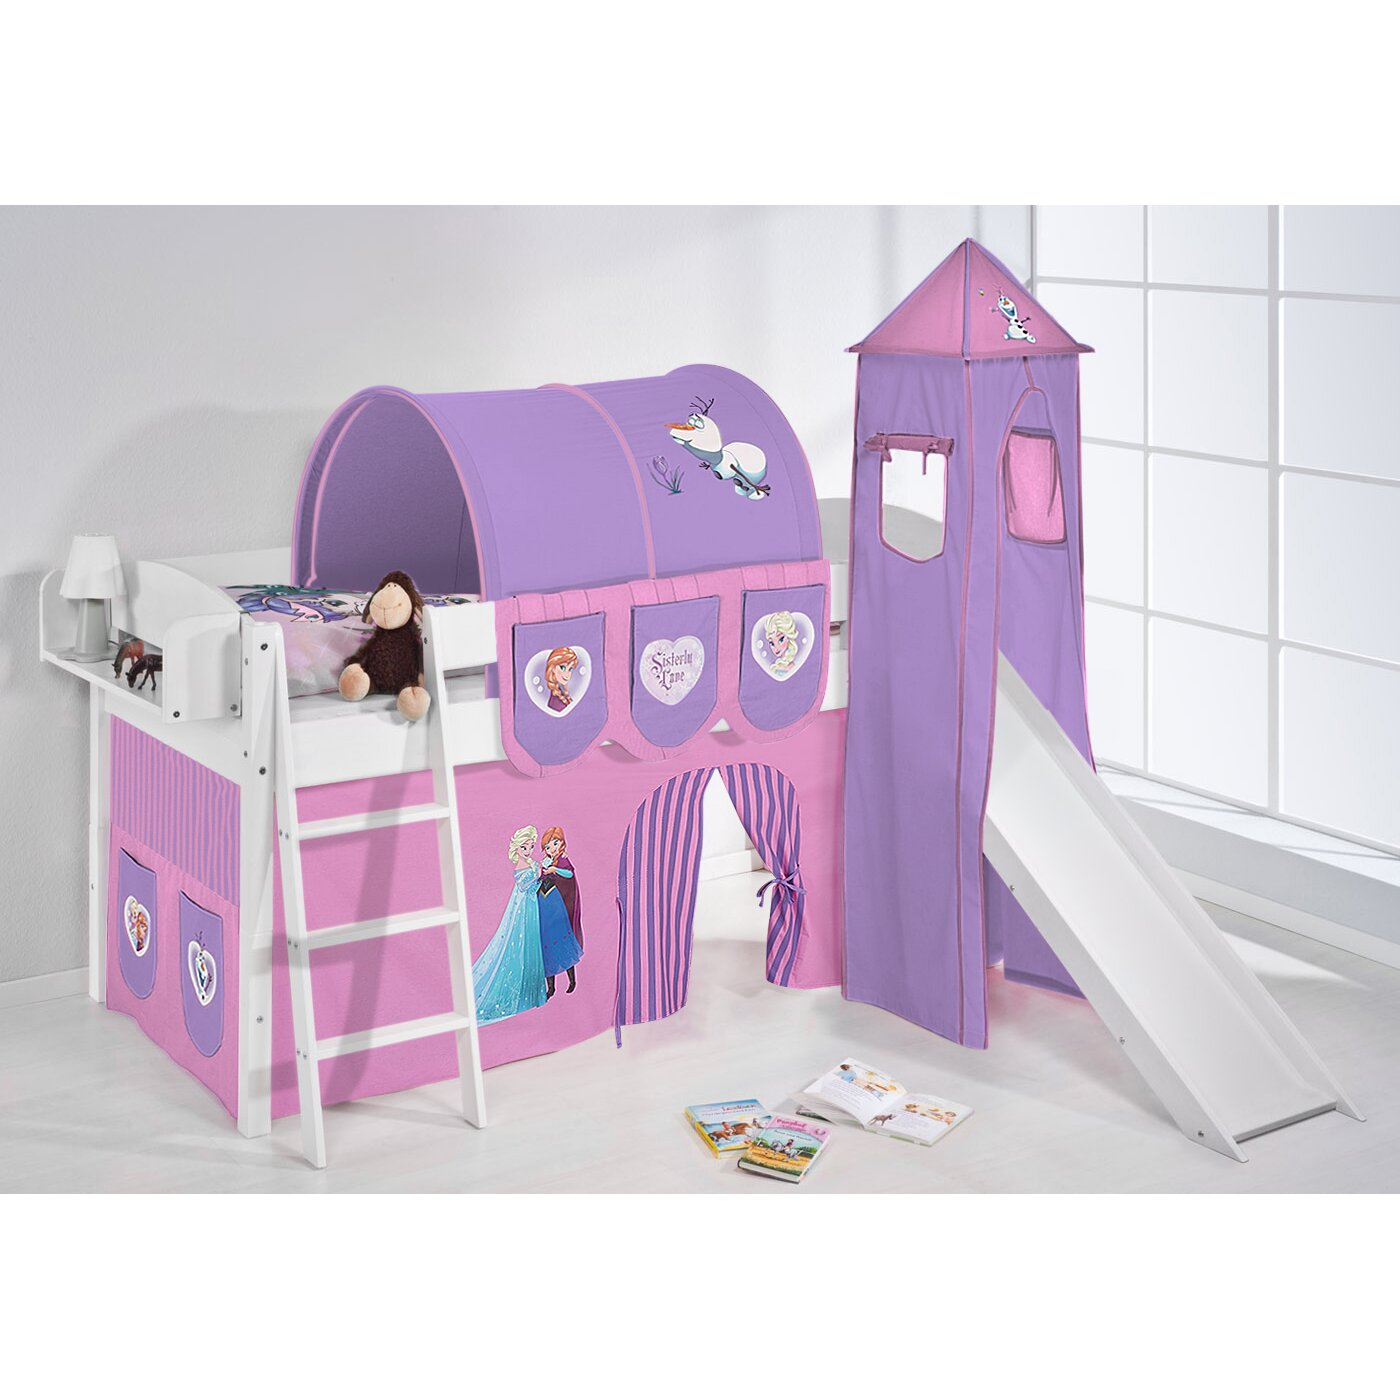 lilokids hochbett disney 39 s frozen mit turm rutsche und. Black Bedroom Furniture Sets. Home Design Ideas